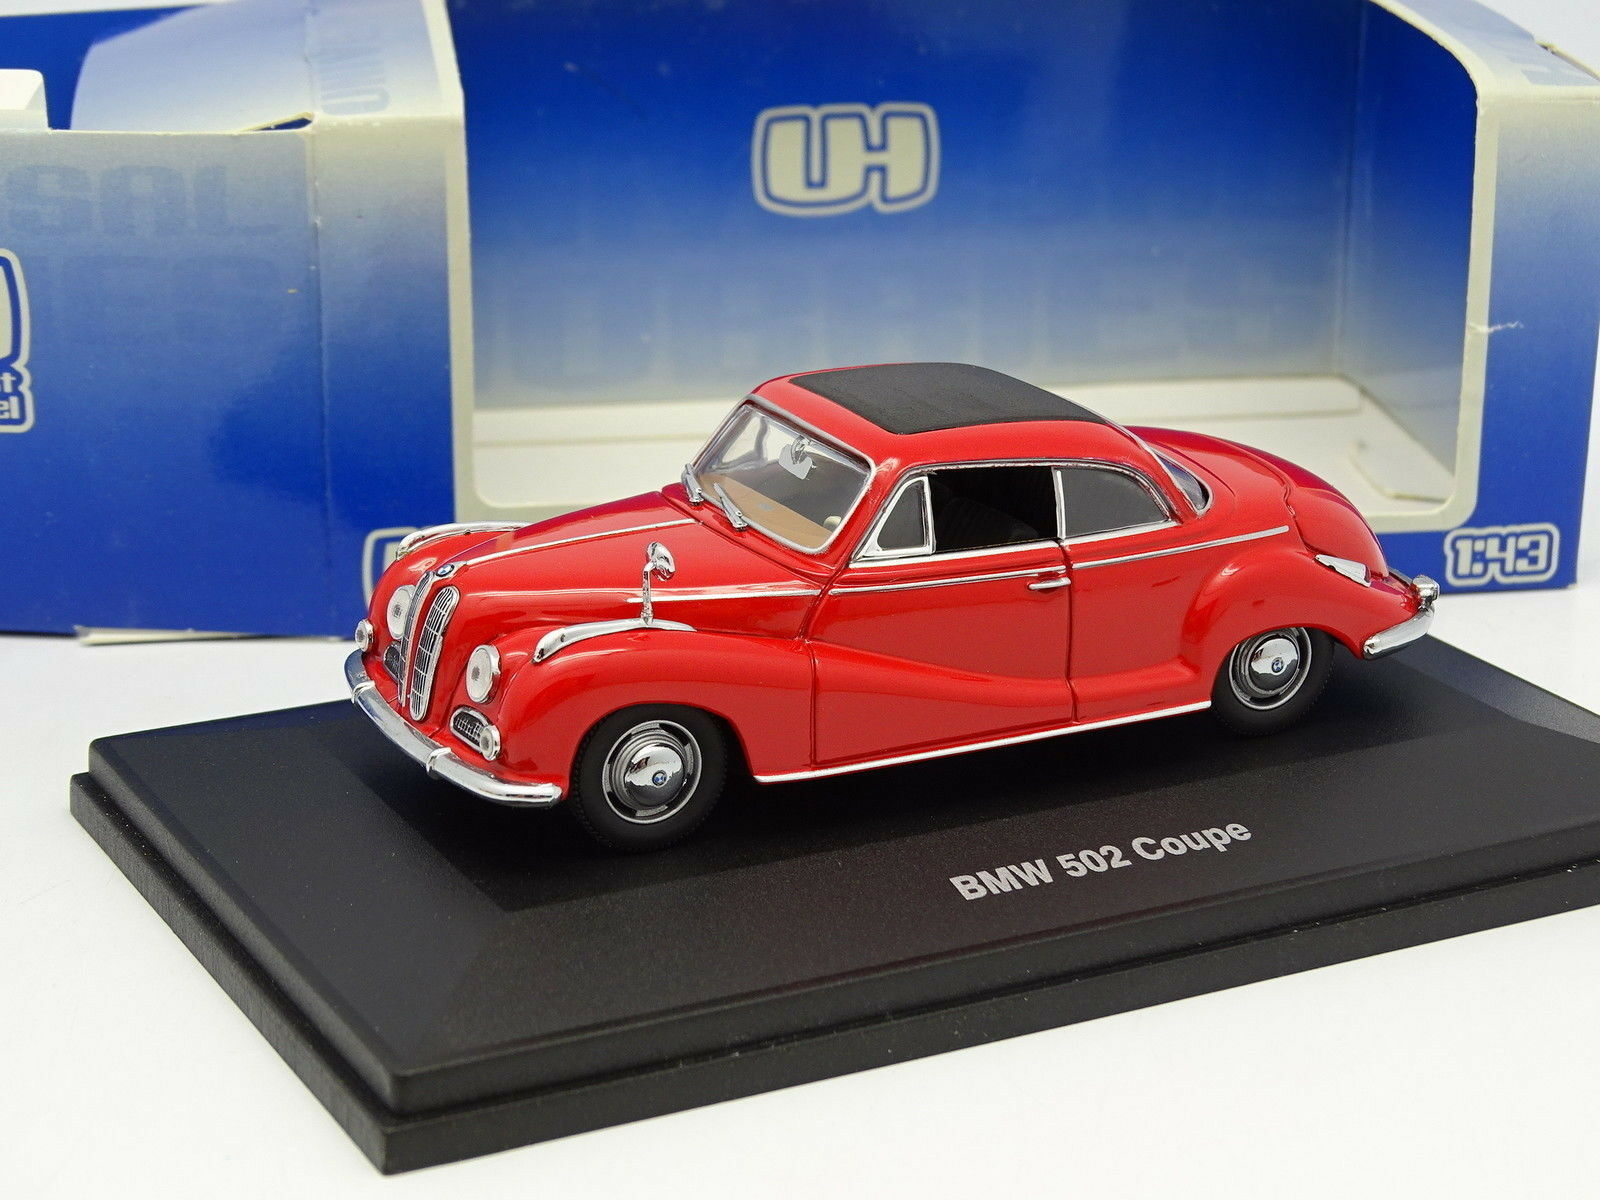 UH 1 43 - BMW BMW BMW 502 Coupe Red 5b348c